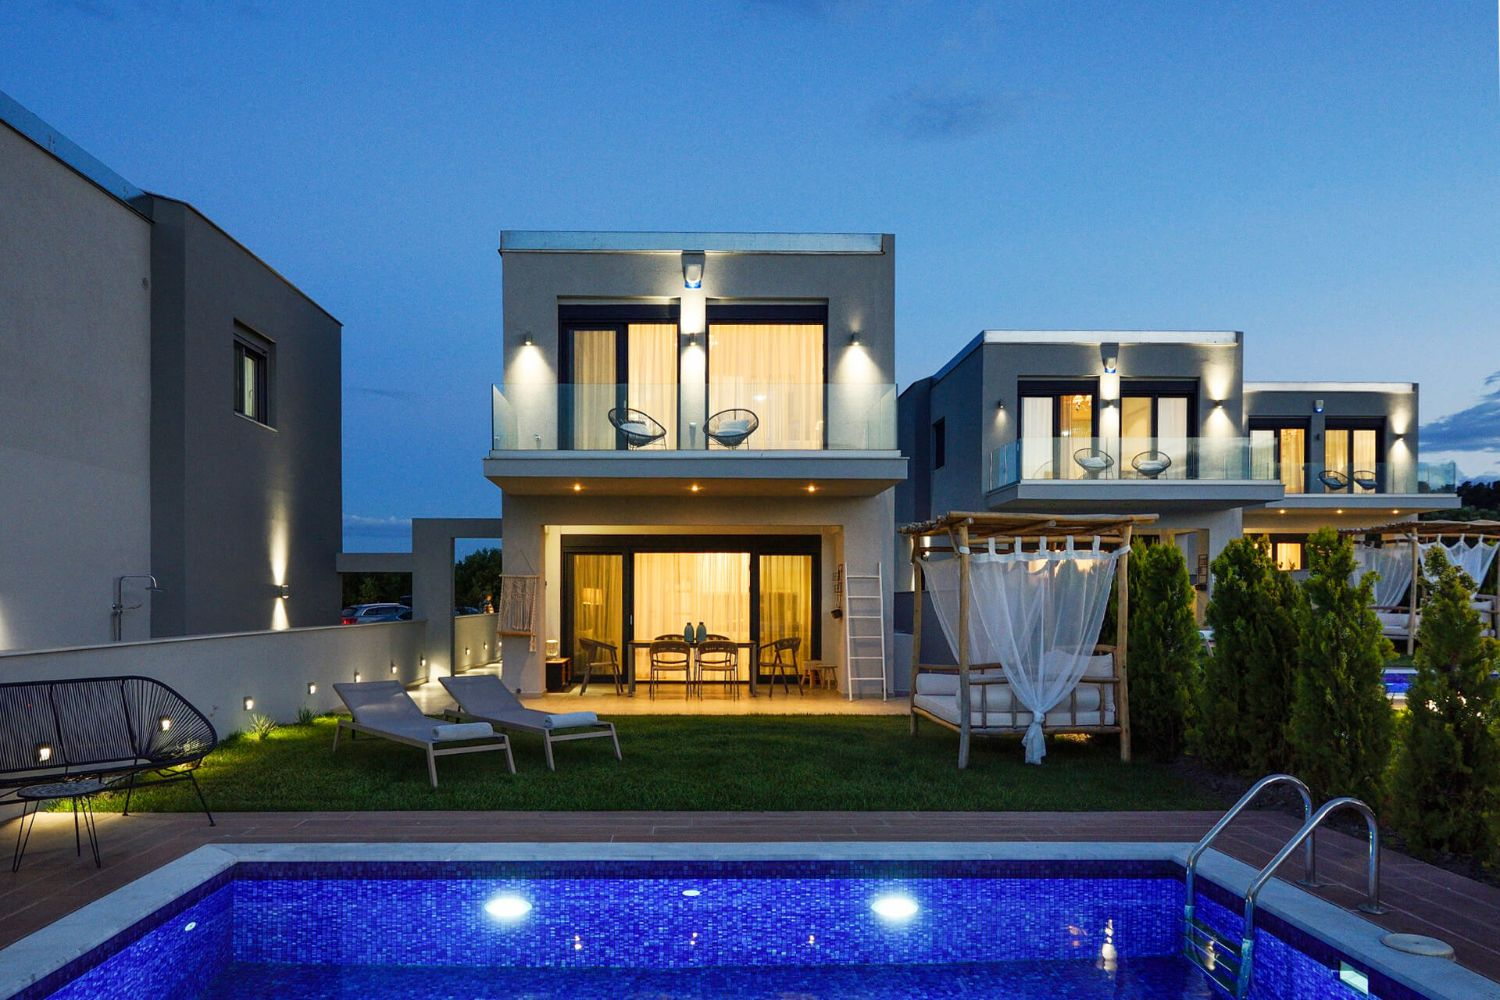 3 Bedroom Villas with Private Pool